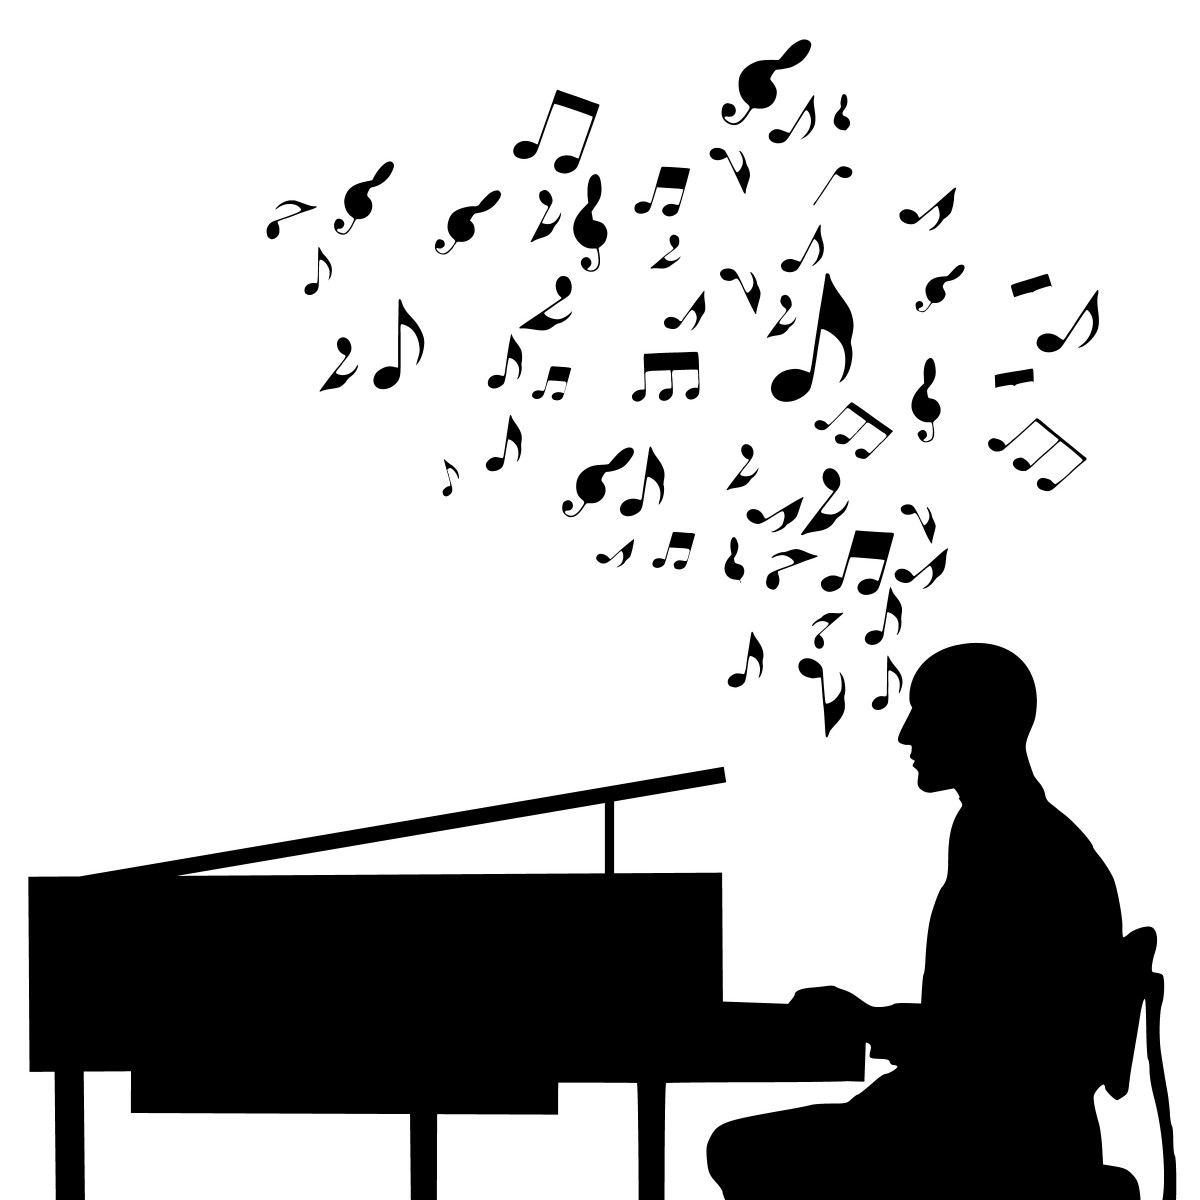 Free Images : piano, player, jazz, music, silhouette